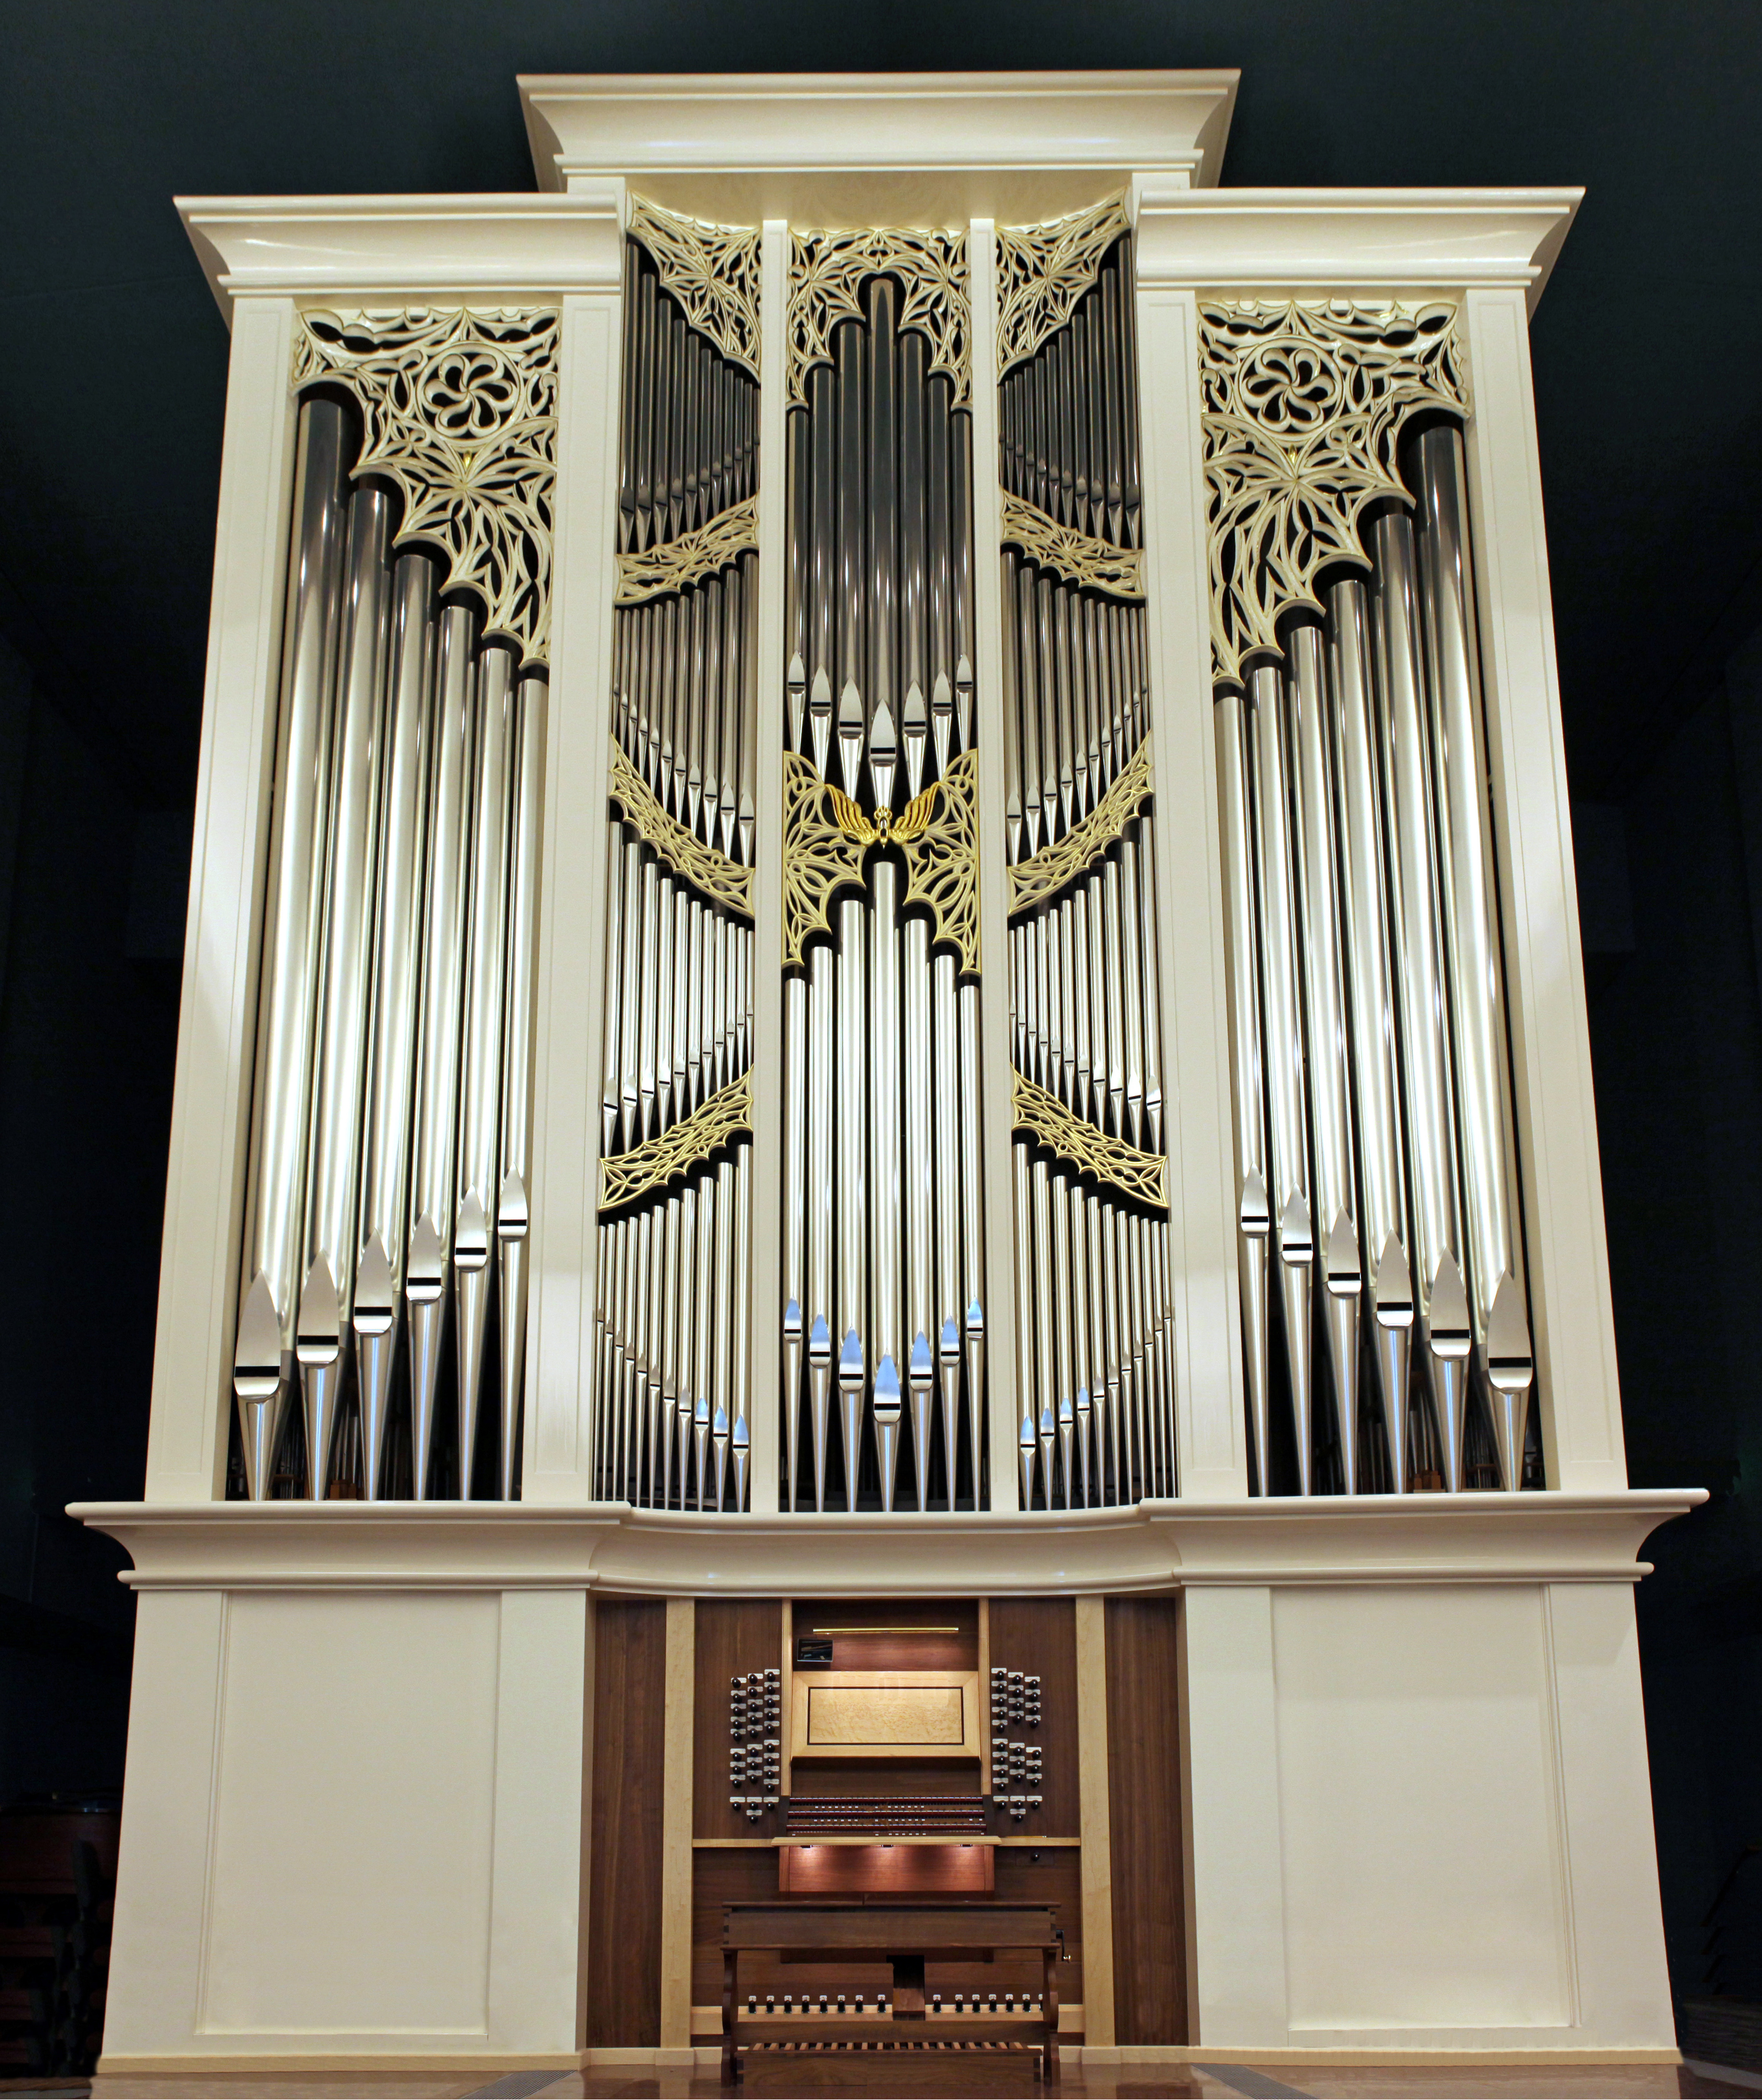 Work by Paul Fritts & Co. Organ Builders